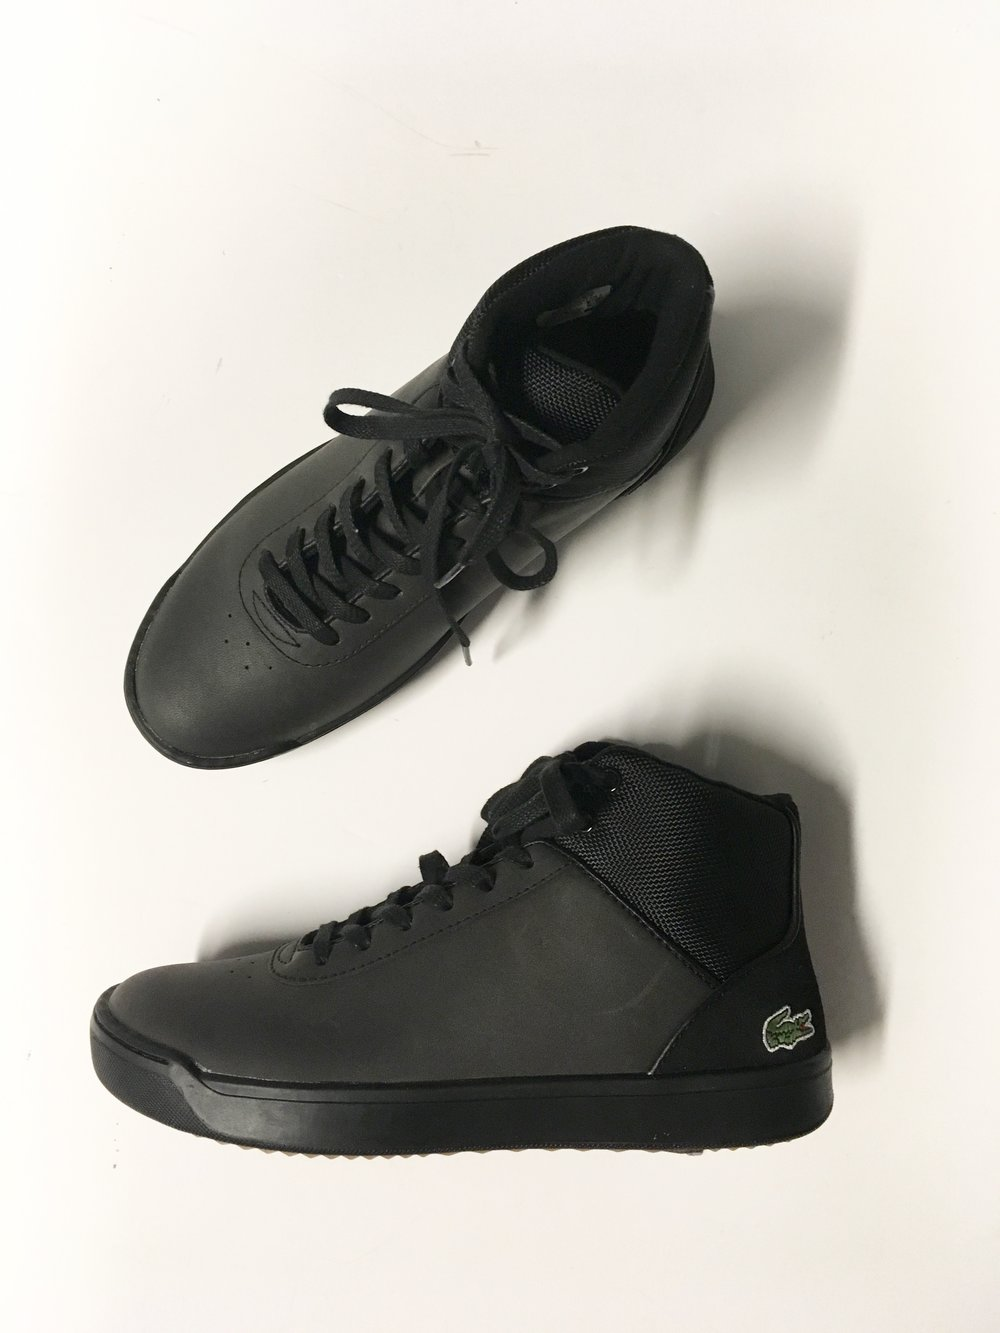 Lacoste also makes a sporty winter shoe so that black ice doesn't ruin all your holiday plans. Grab these black beauties for only $195